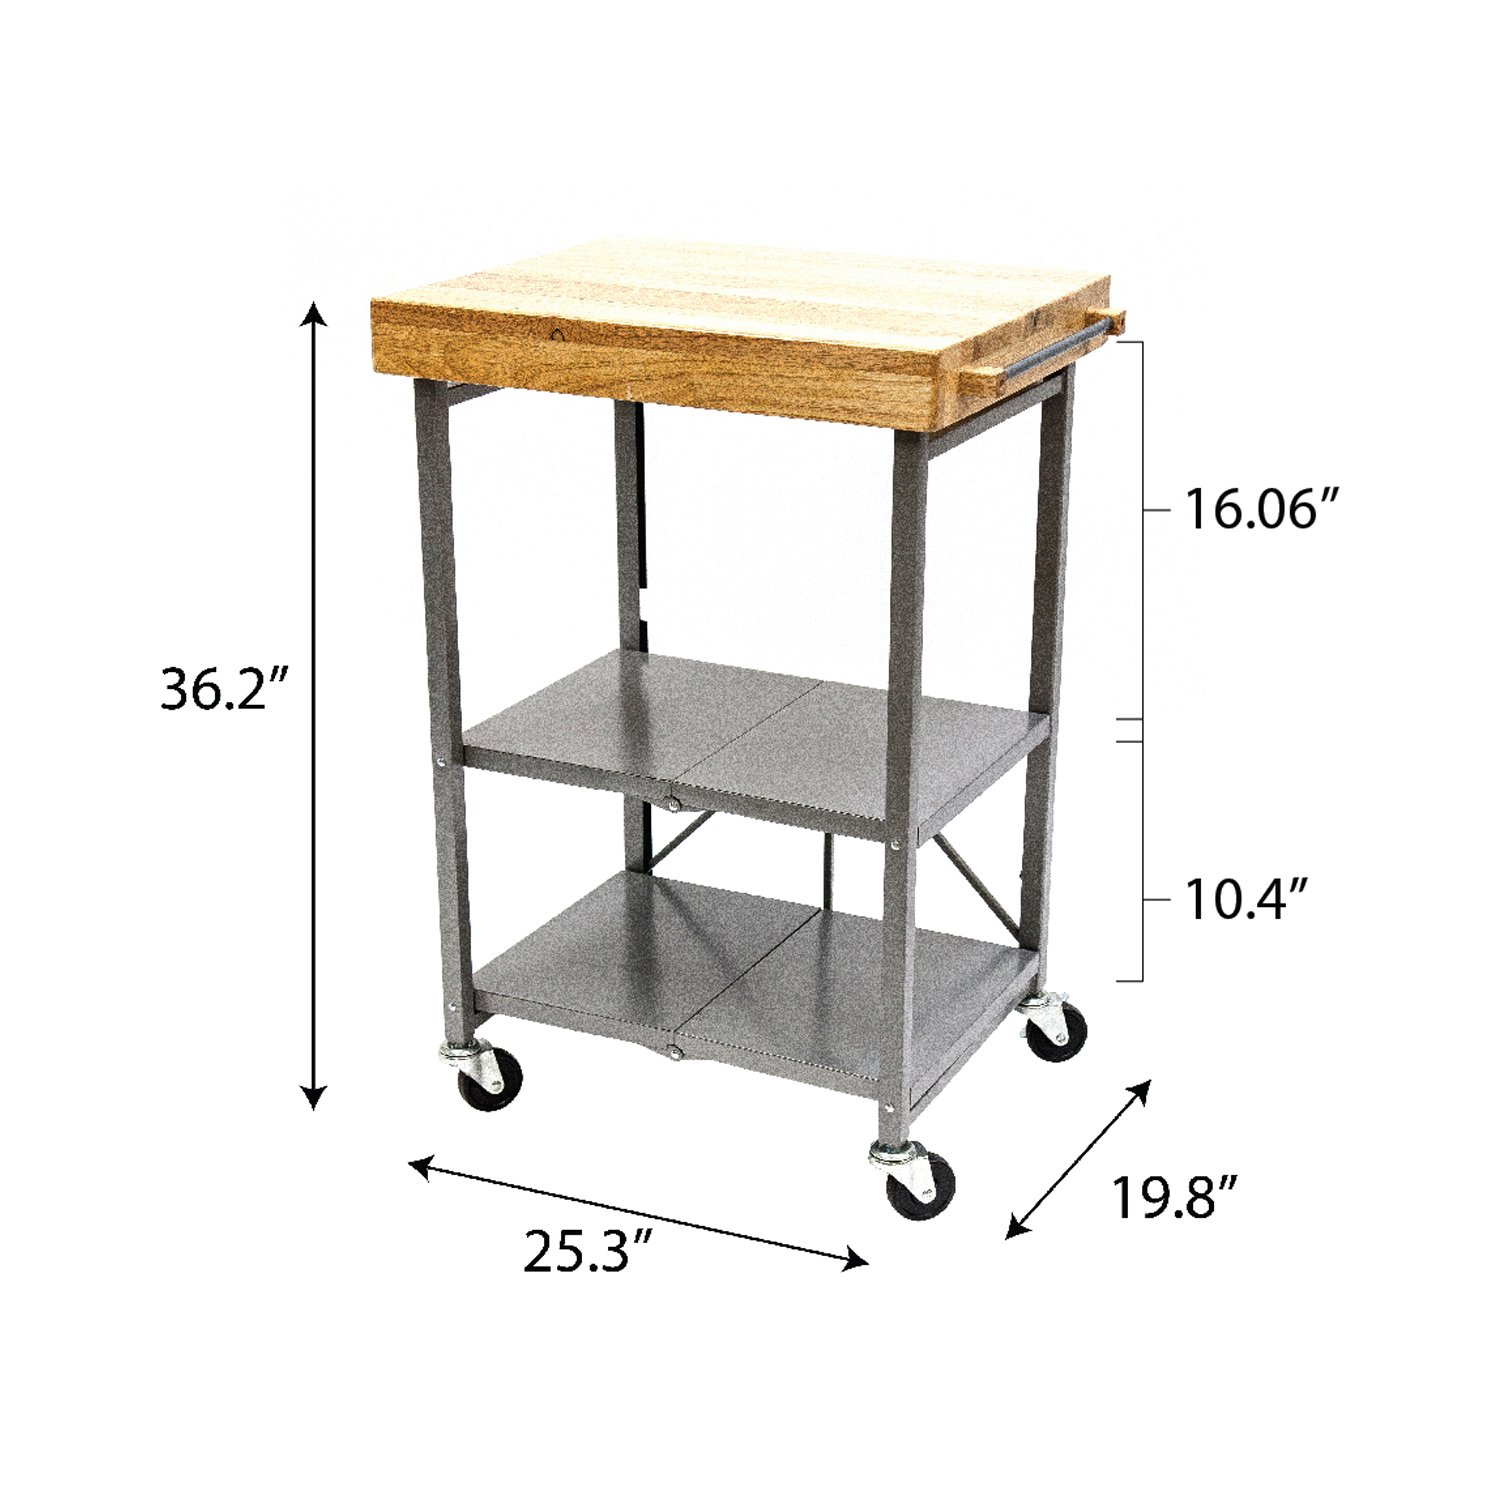 Origami Foldable Rolling Kitchen Island Cart, Food Serving Cart, 3-Tier Storage Shelf with Wood Top, Microwave Stand, Heavy Duty, Silver by Origami (Image #6)